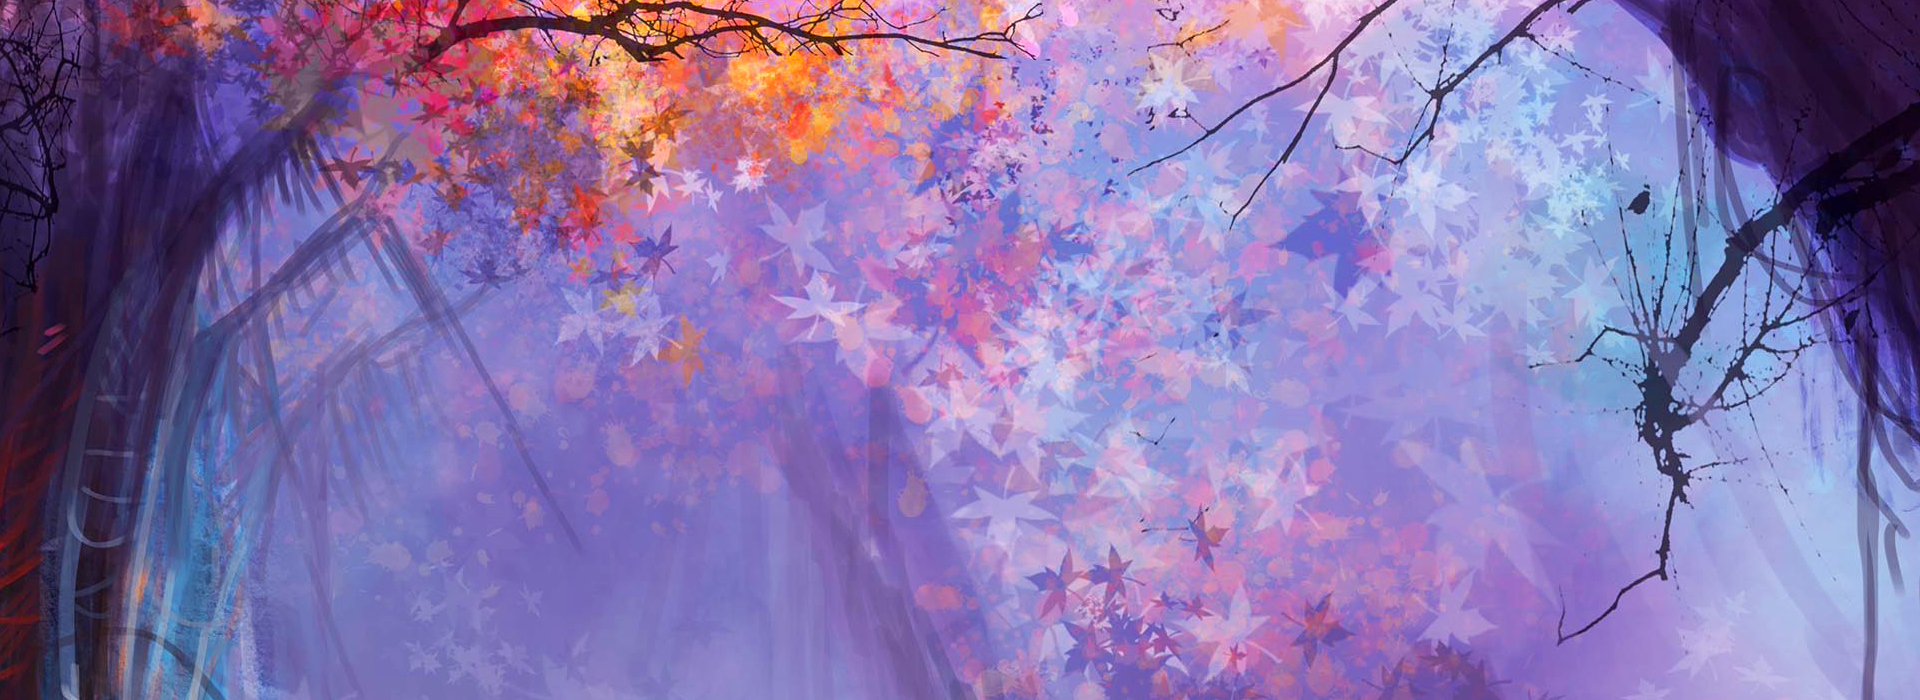 Cute Ribbons Wallpaper Magical Forest Background Myth Magic Forests Background